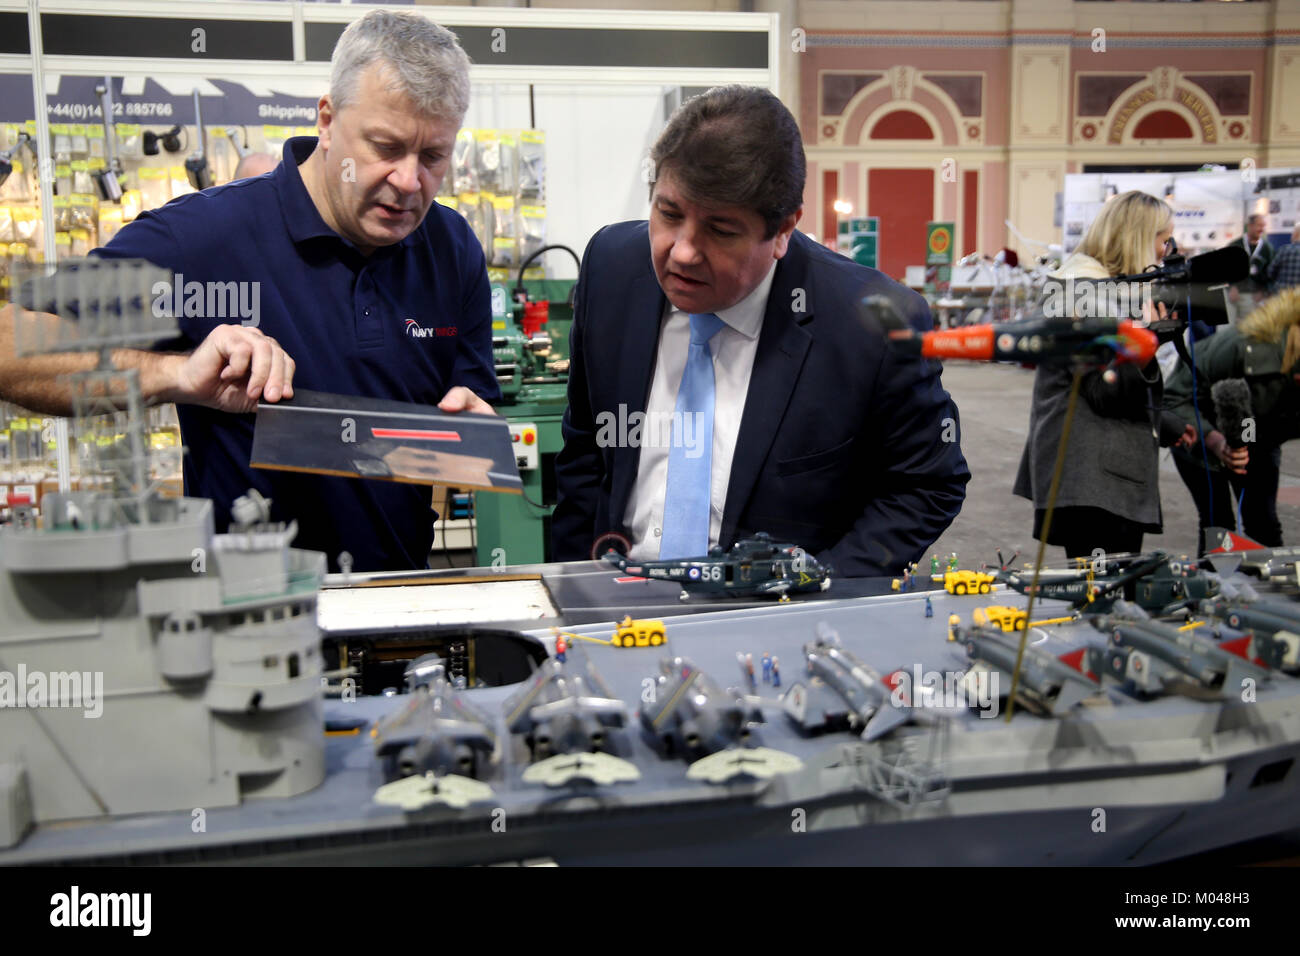 London, UK. 19th Jan, 2018. Royal Navy veteran Dave Fortey unveiling the work of a life time he has spent the last - Stock Image